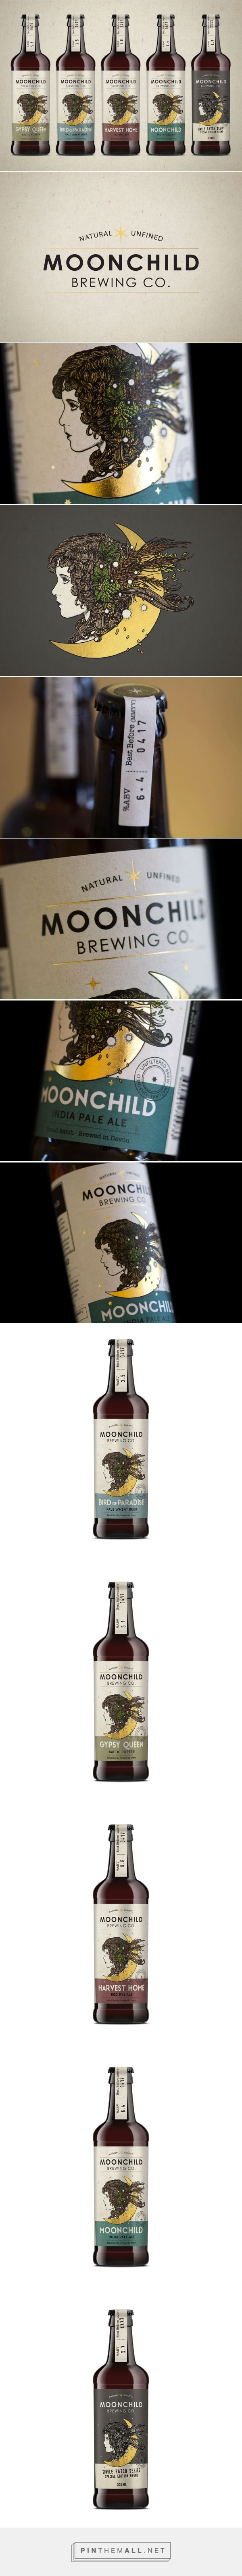 Moonchild Brewing Co. Craft Beer label design by Kingdom & Sparrow (UK) - http://www.packagingoftheworld.com/2016/08/moonchild-brewing-co-craft-beer.html